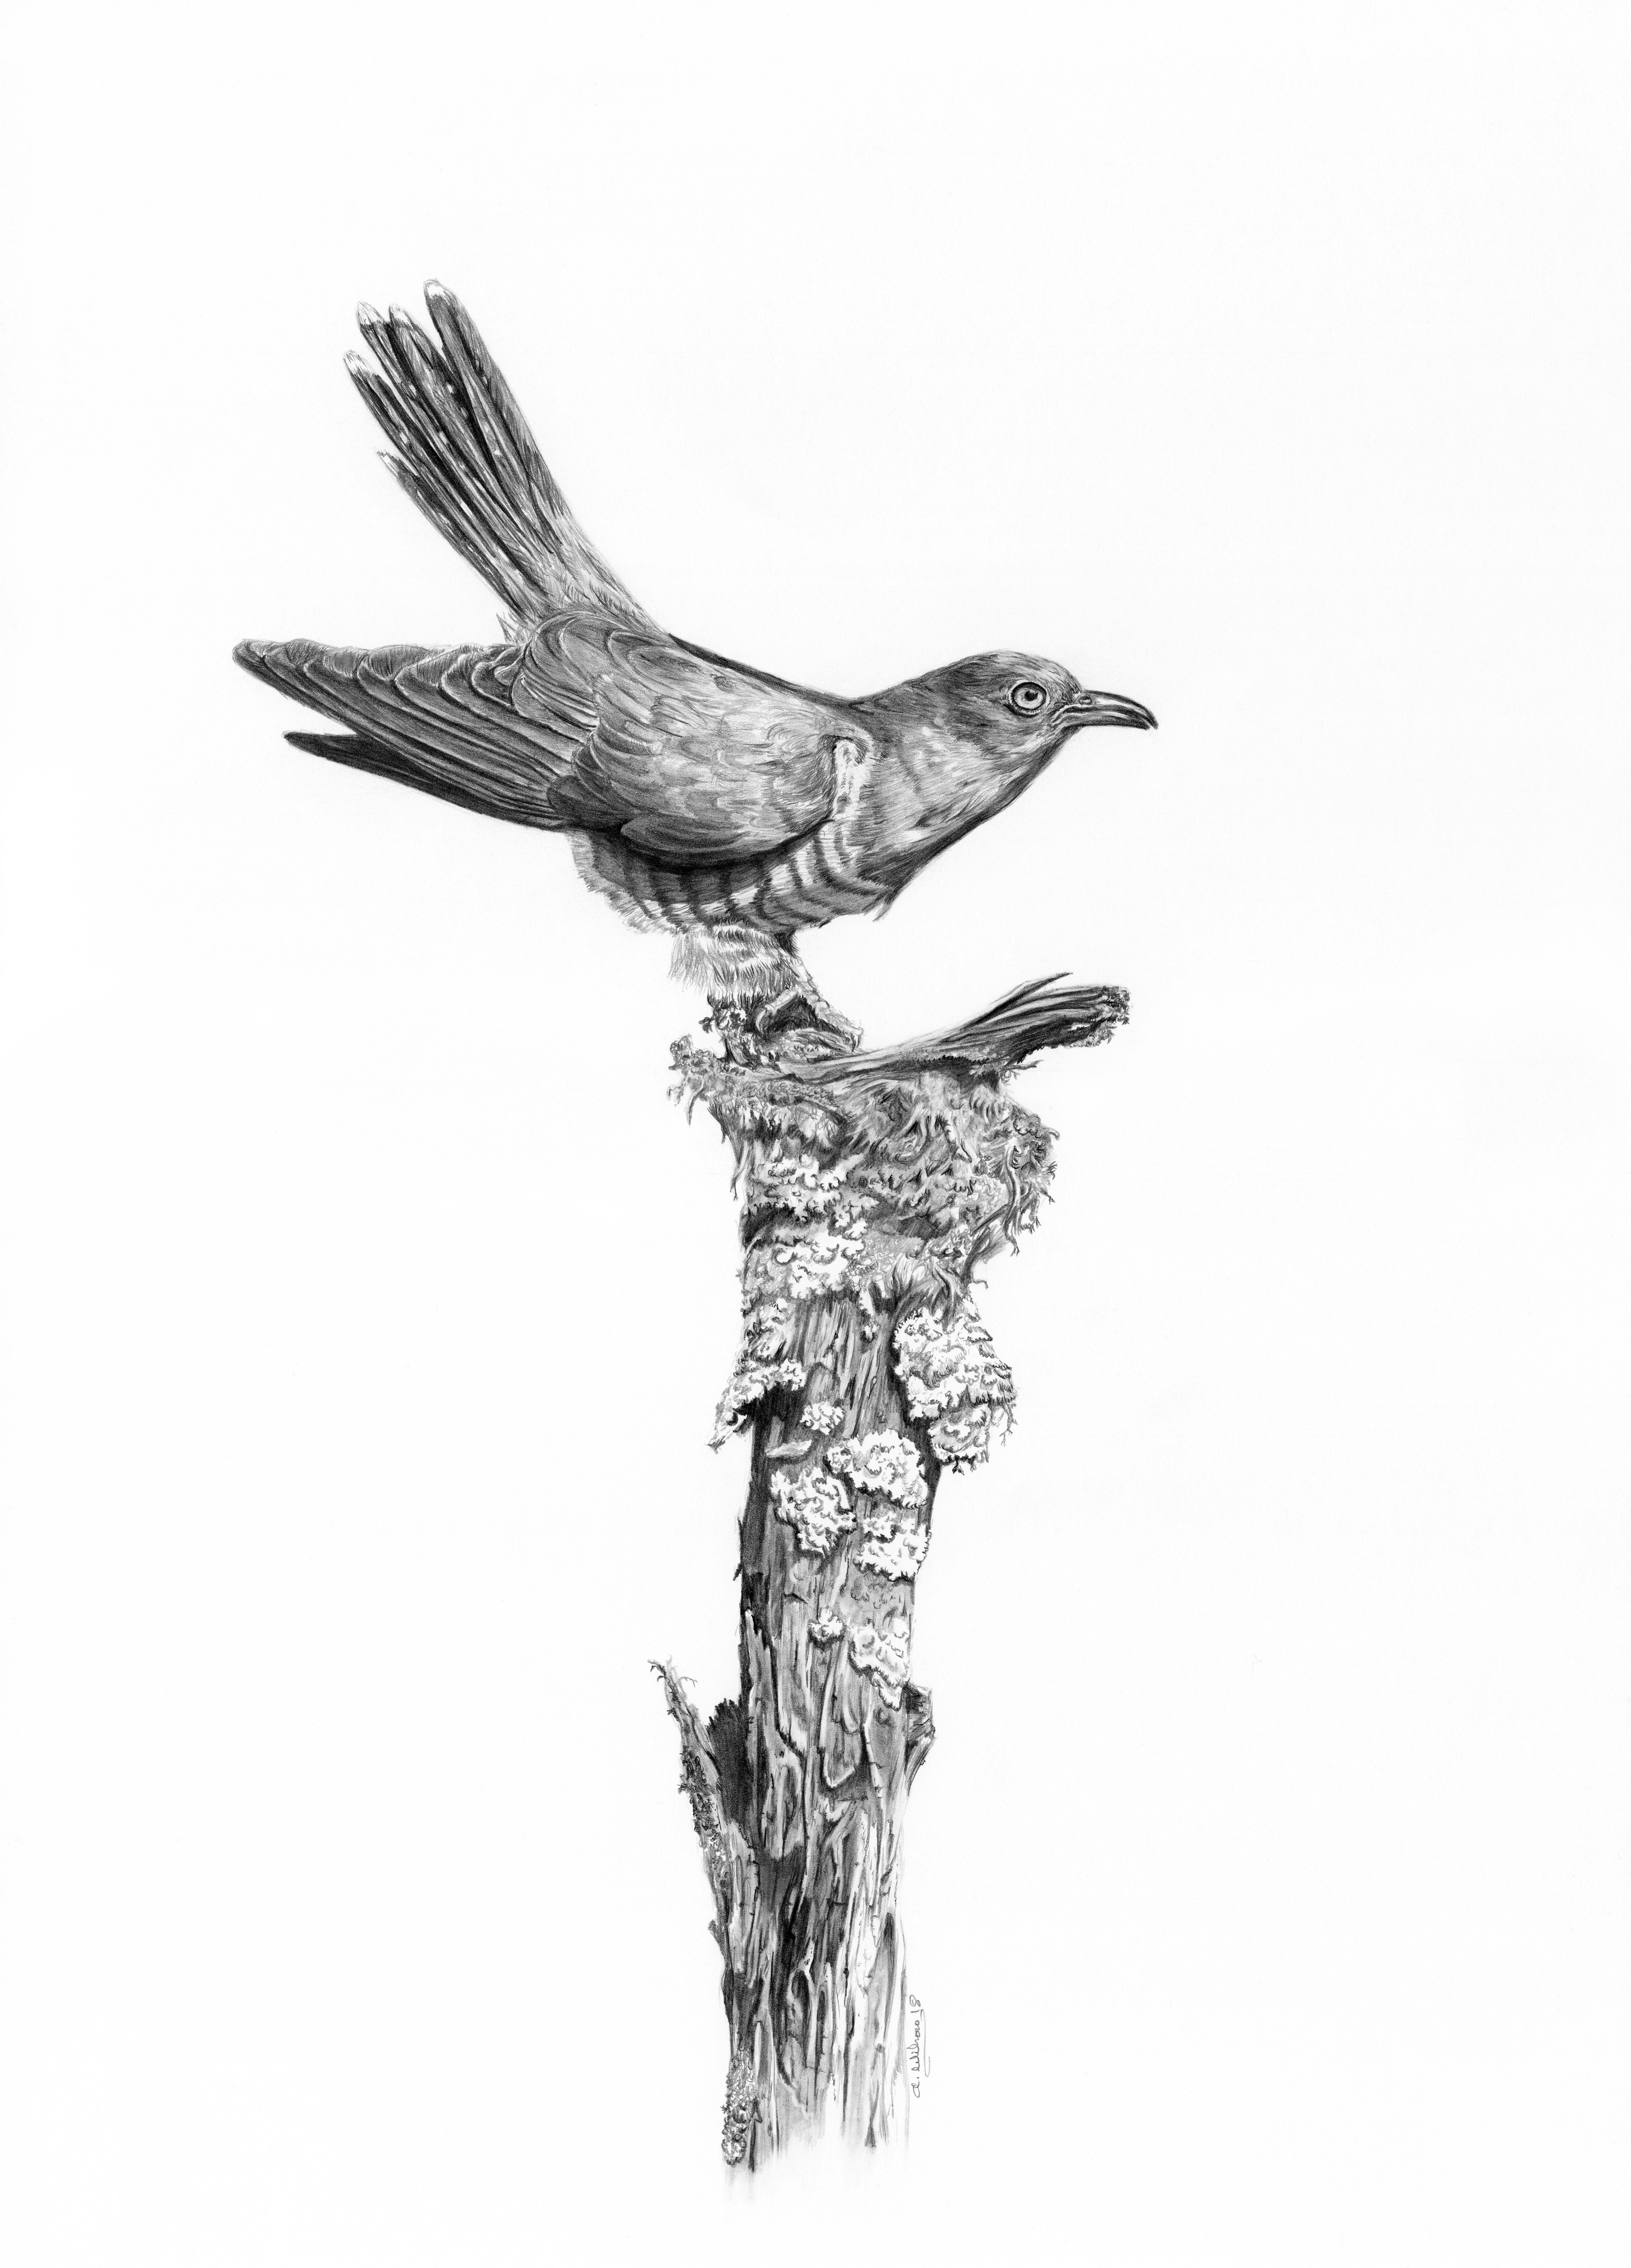 how to draw a cuckoo bird birds drawing images pencil sketches colorful arts bird how cuckoo a draw to